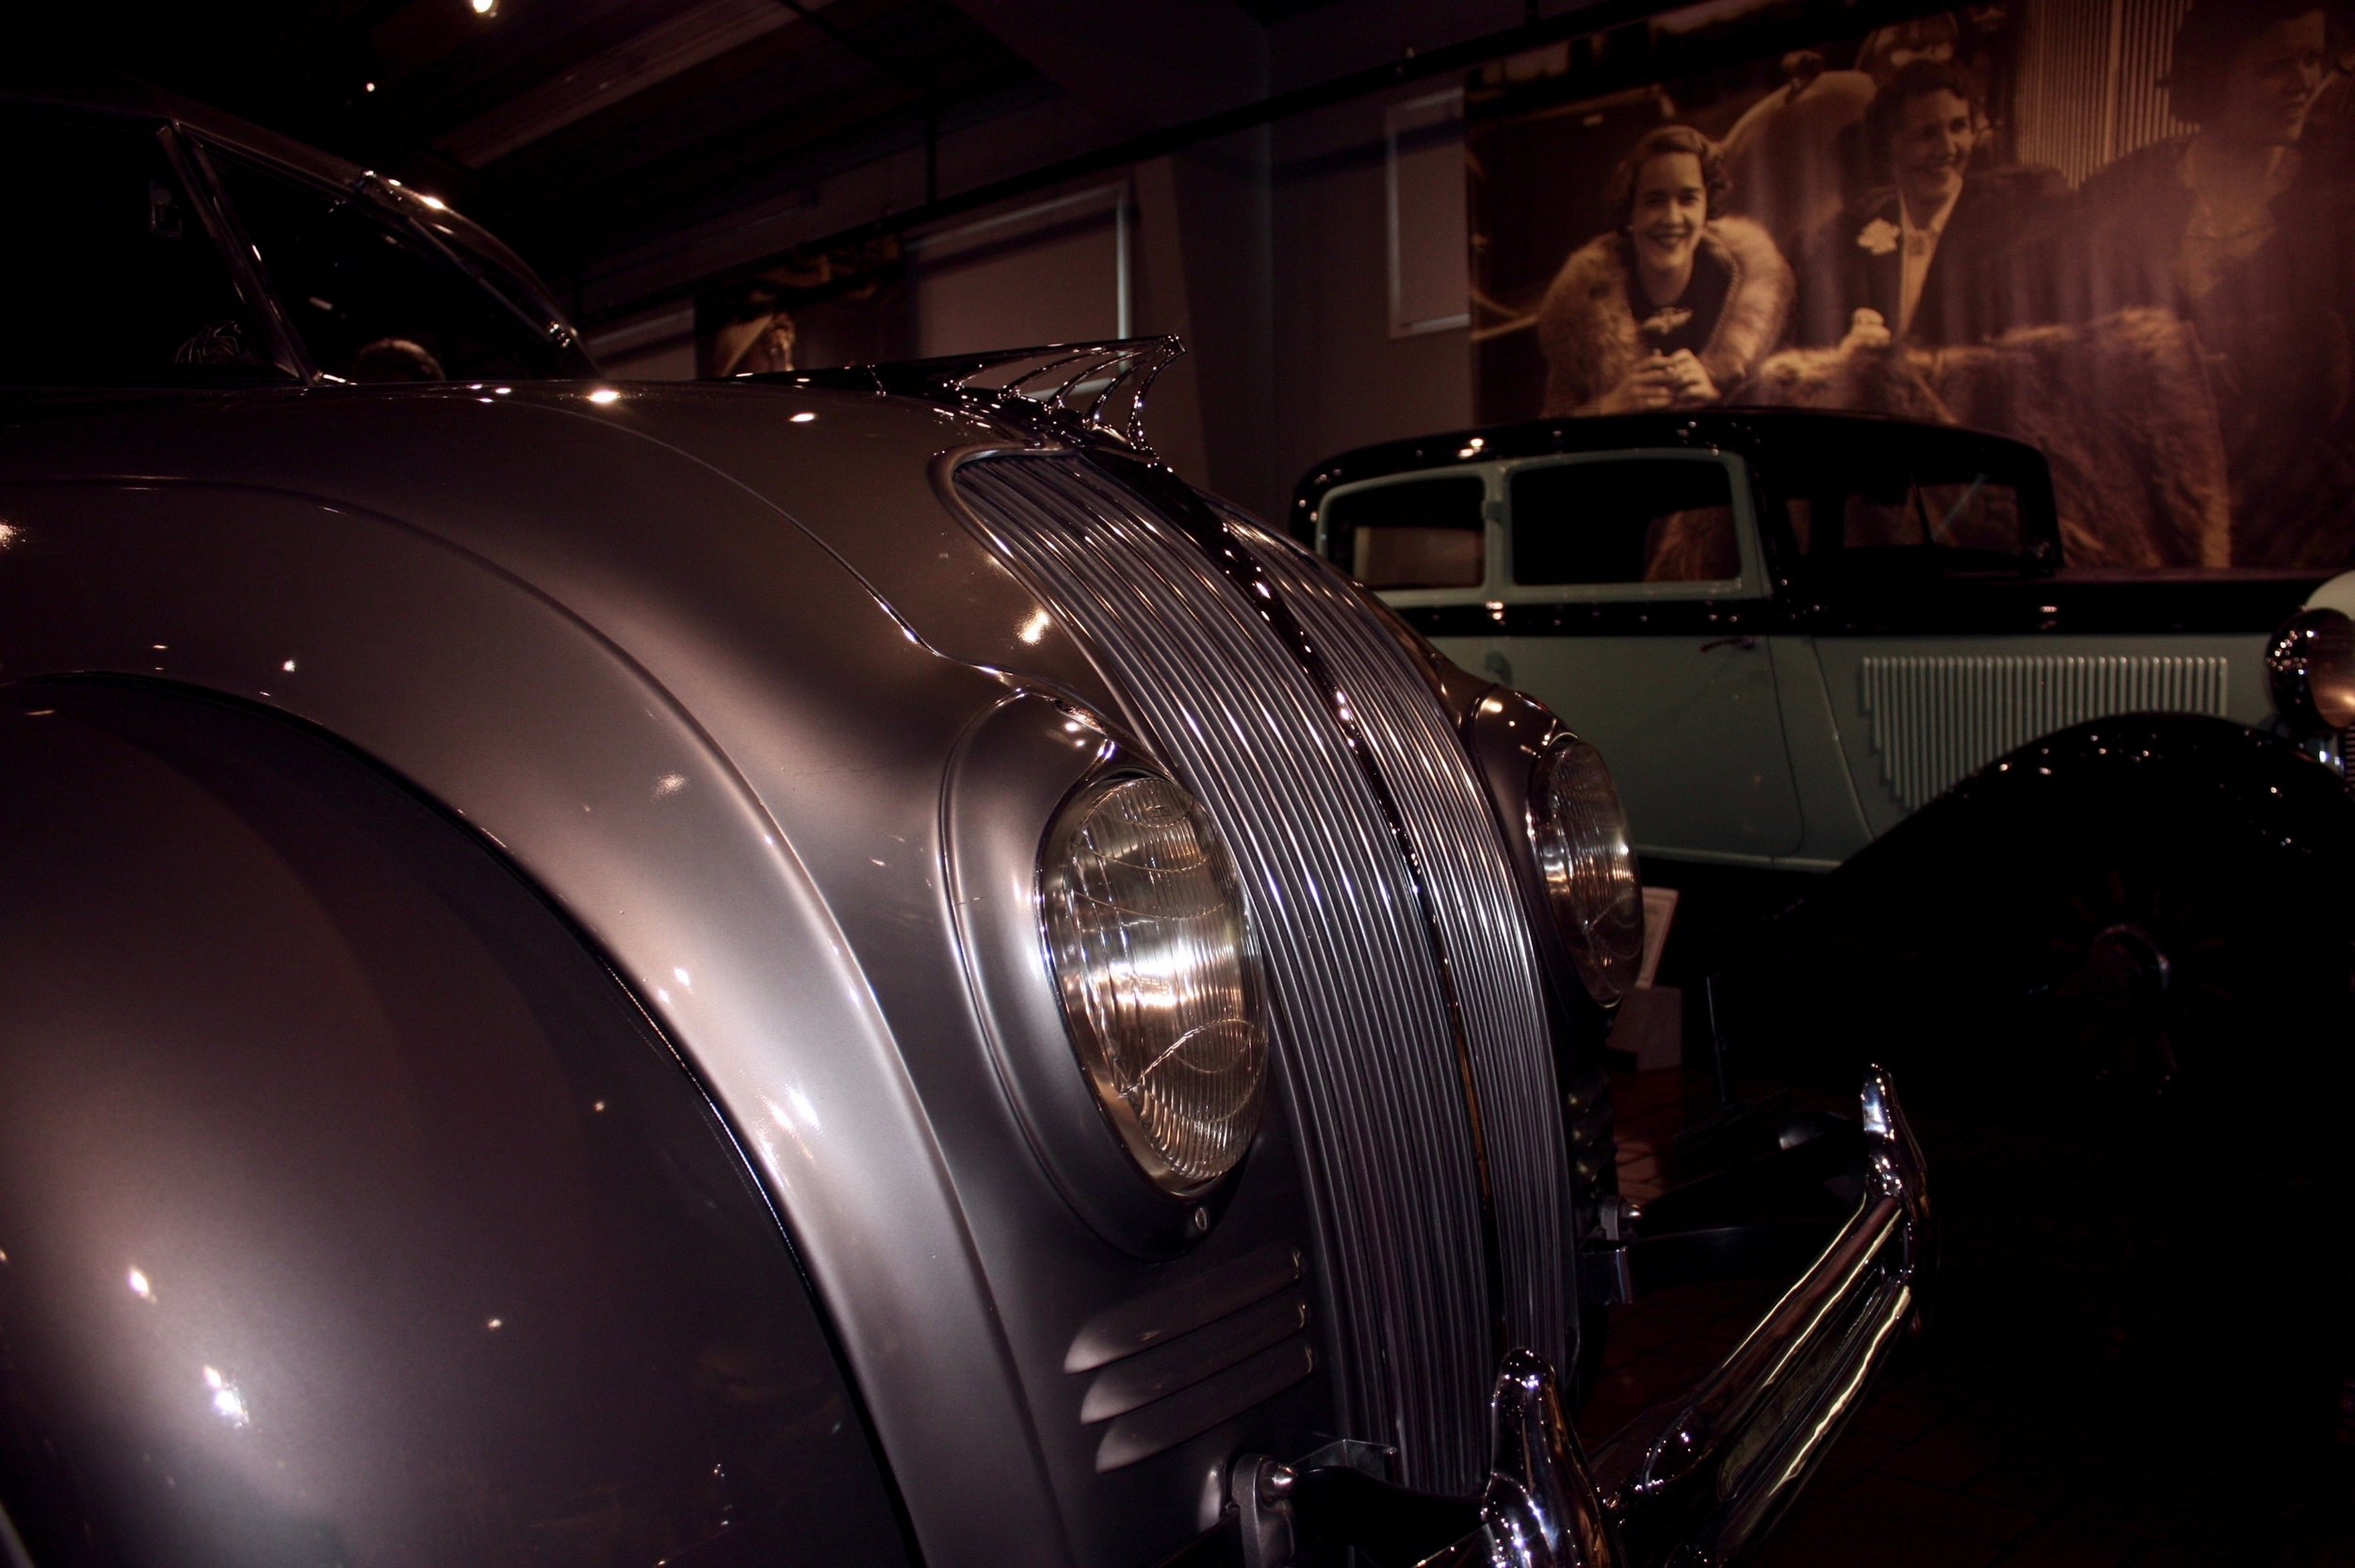 1934 DeSoto Airflow at the Gilmore Museum with 1932 DeSoto in background